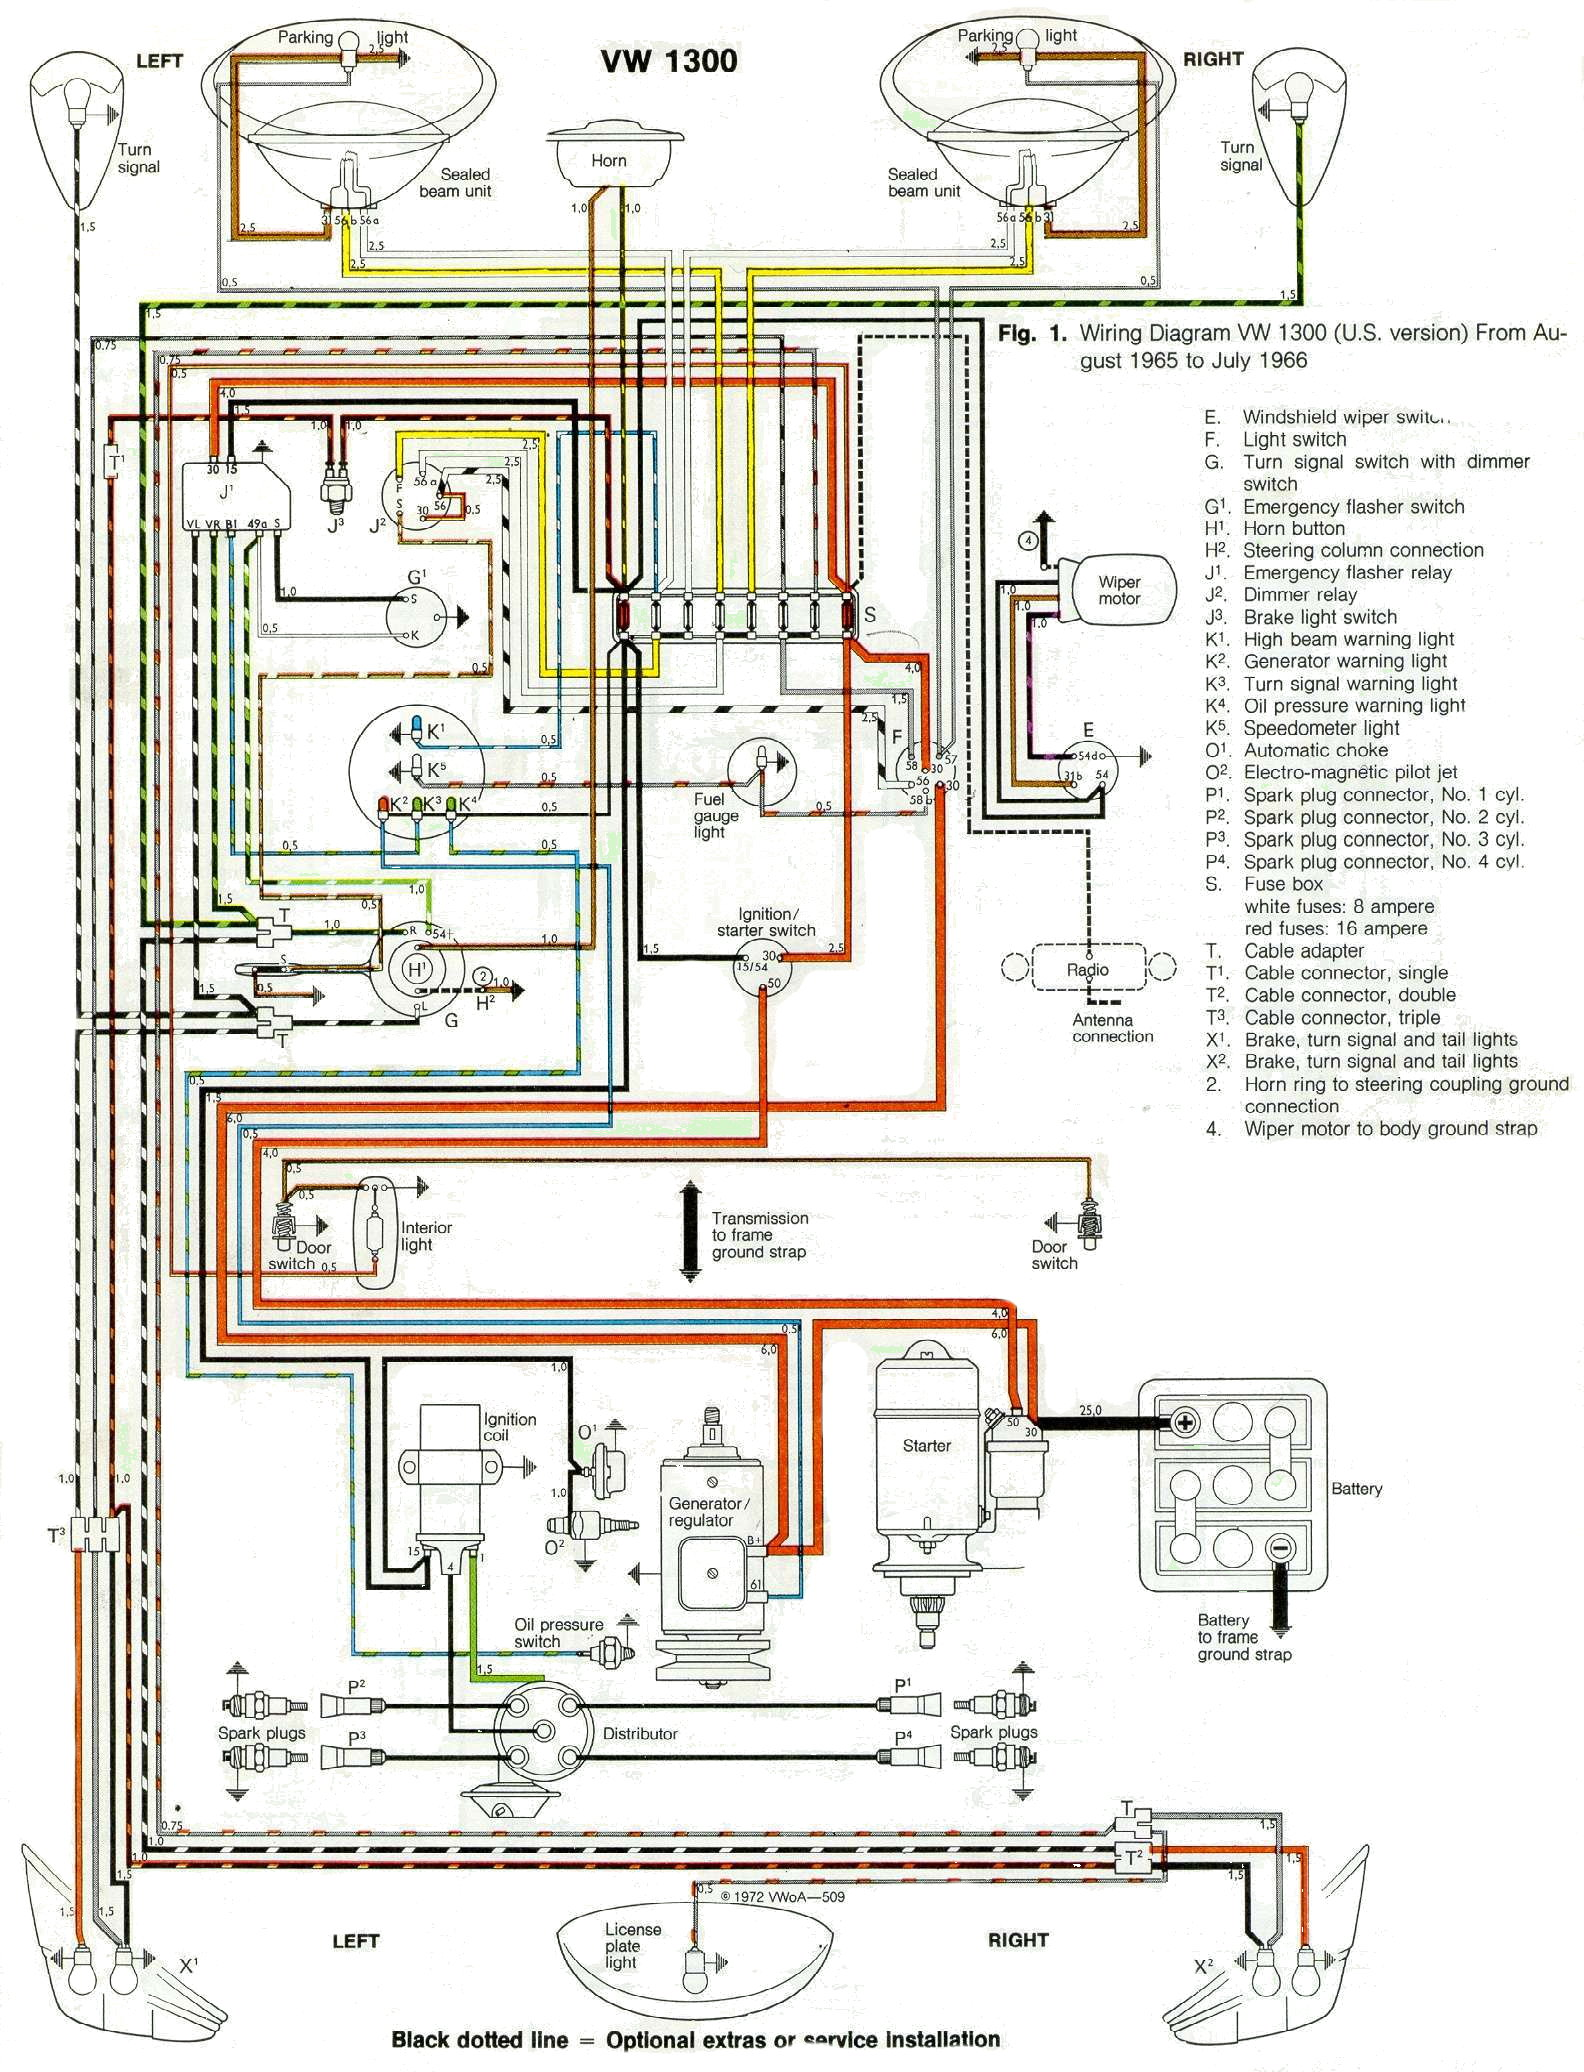 1966 Wiring 1966 wiring diagram vw bug wiring at panicattacktreatment.co